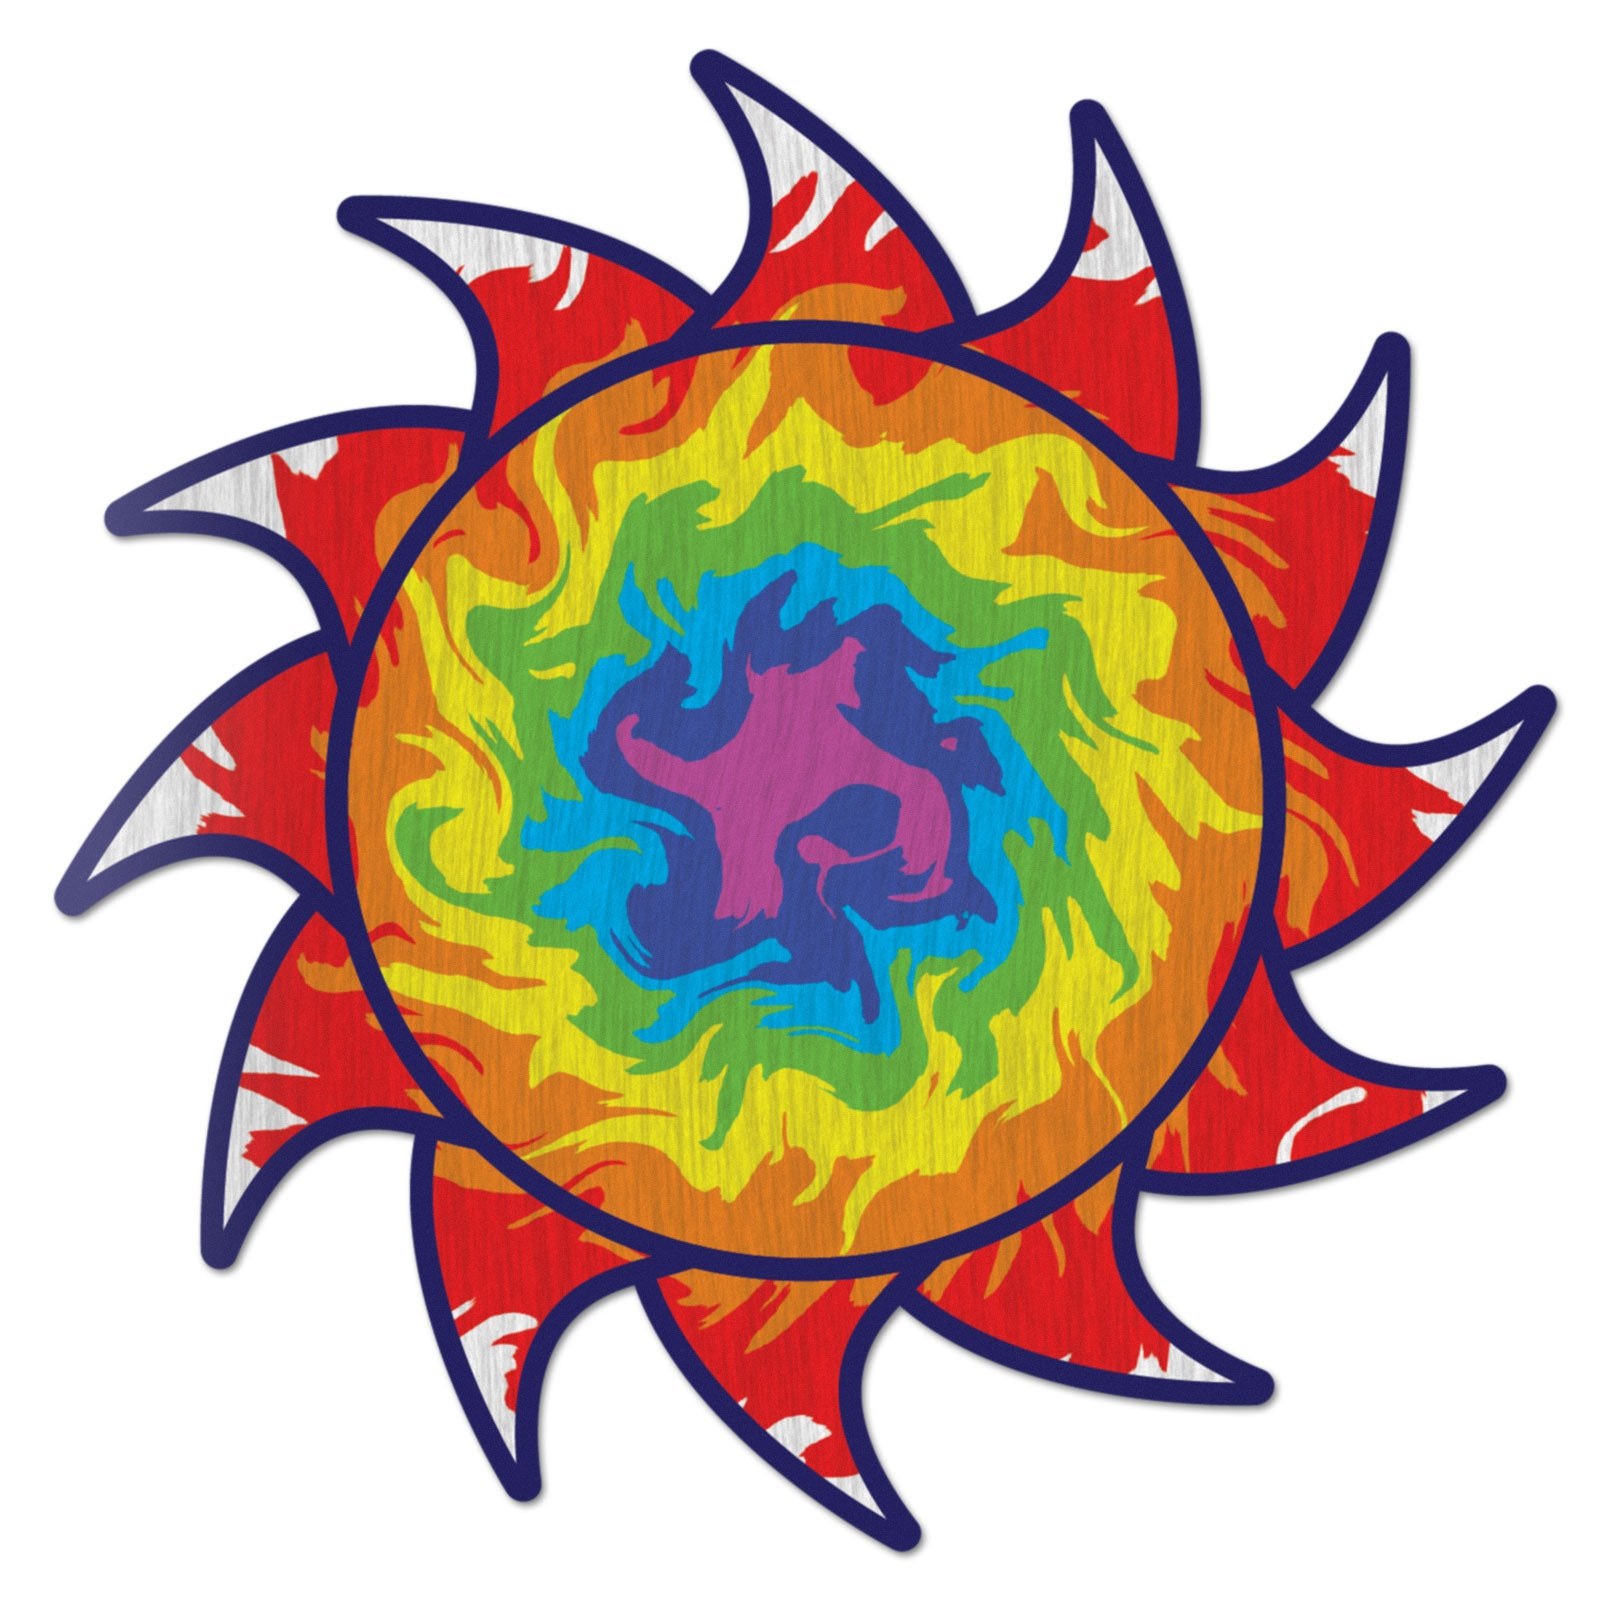 Sun Decal Dragon Tie Dye Sticker Vinyl Rear Window Car Truck Laptop Sun Solar Wall Water and Fade Resistant 4 Inches